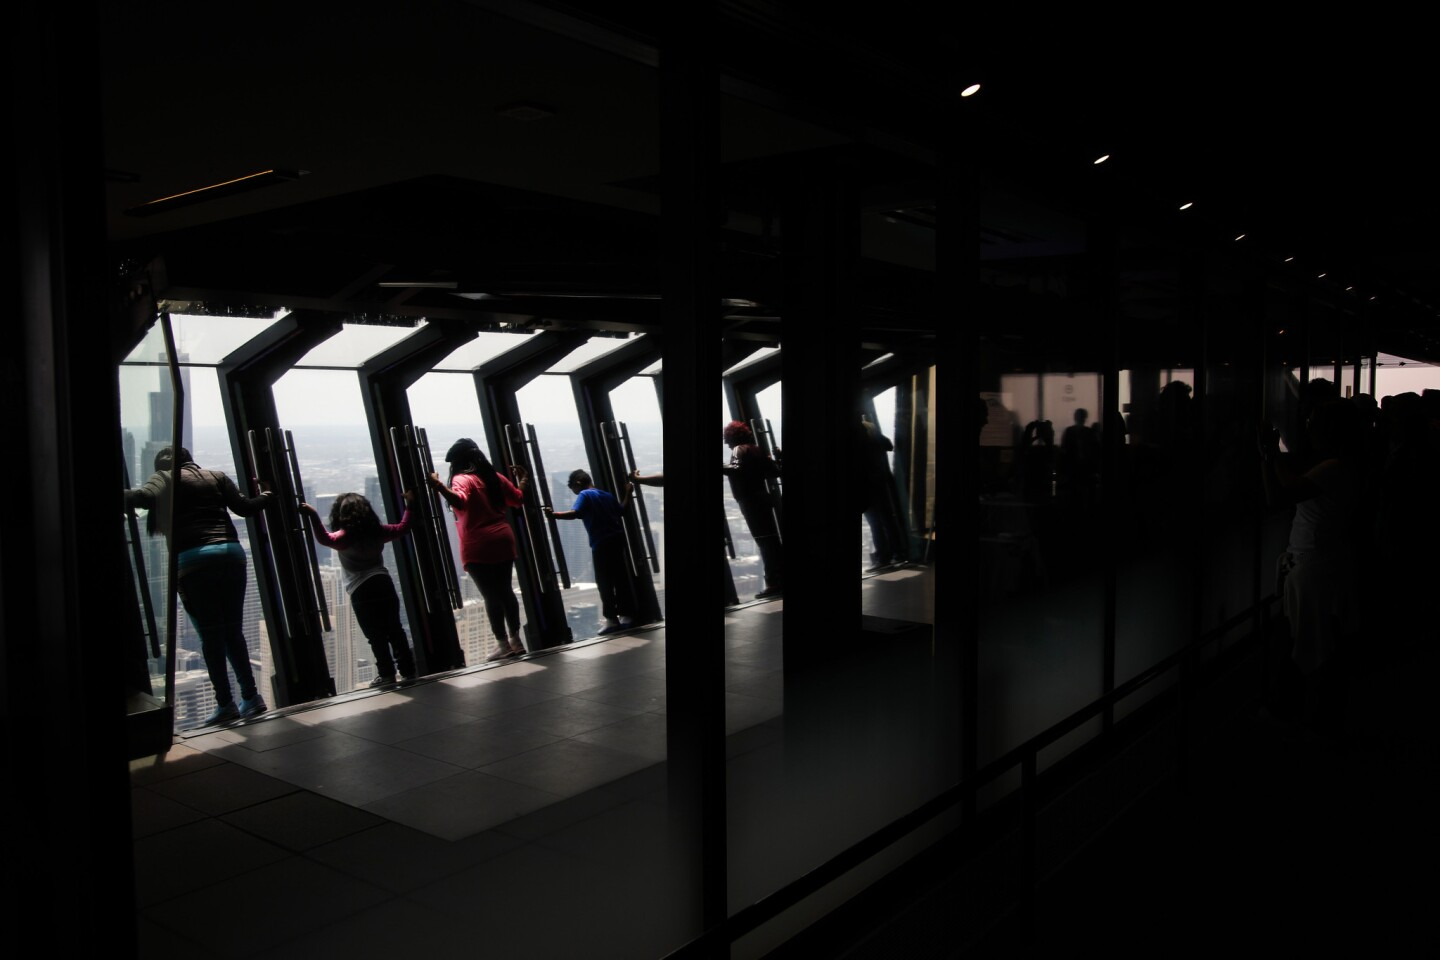 Visitors on the Tilt on the 360 Chicago observation deck of 875 N. Michigan Ave. (formerly called the John Hancock Center) in Chicago on May 14, 2018.